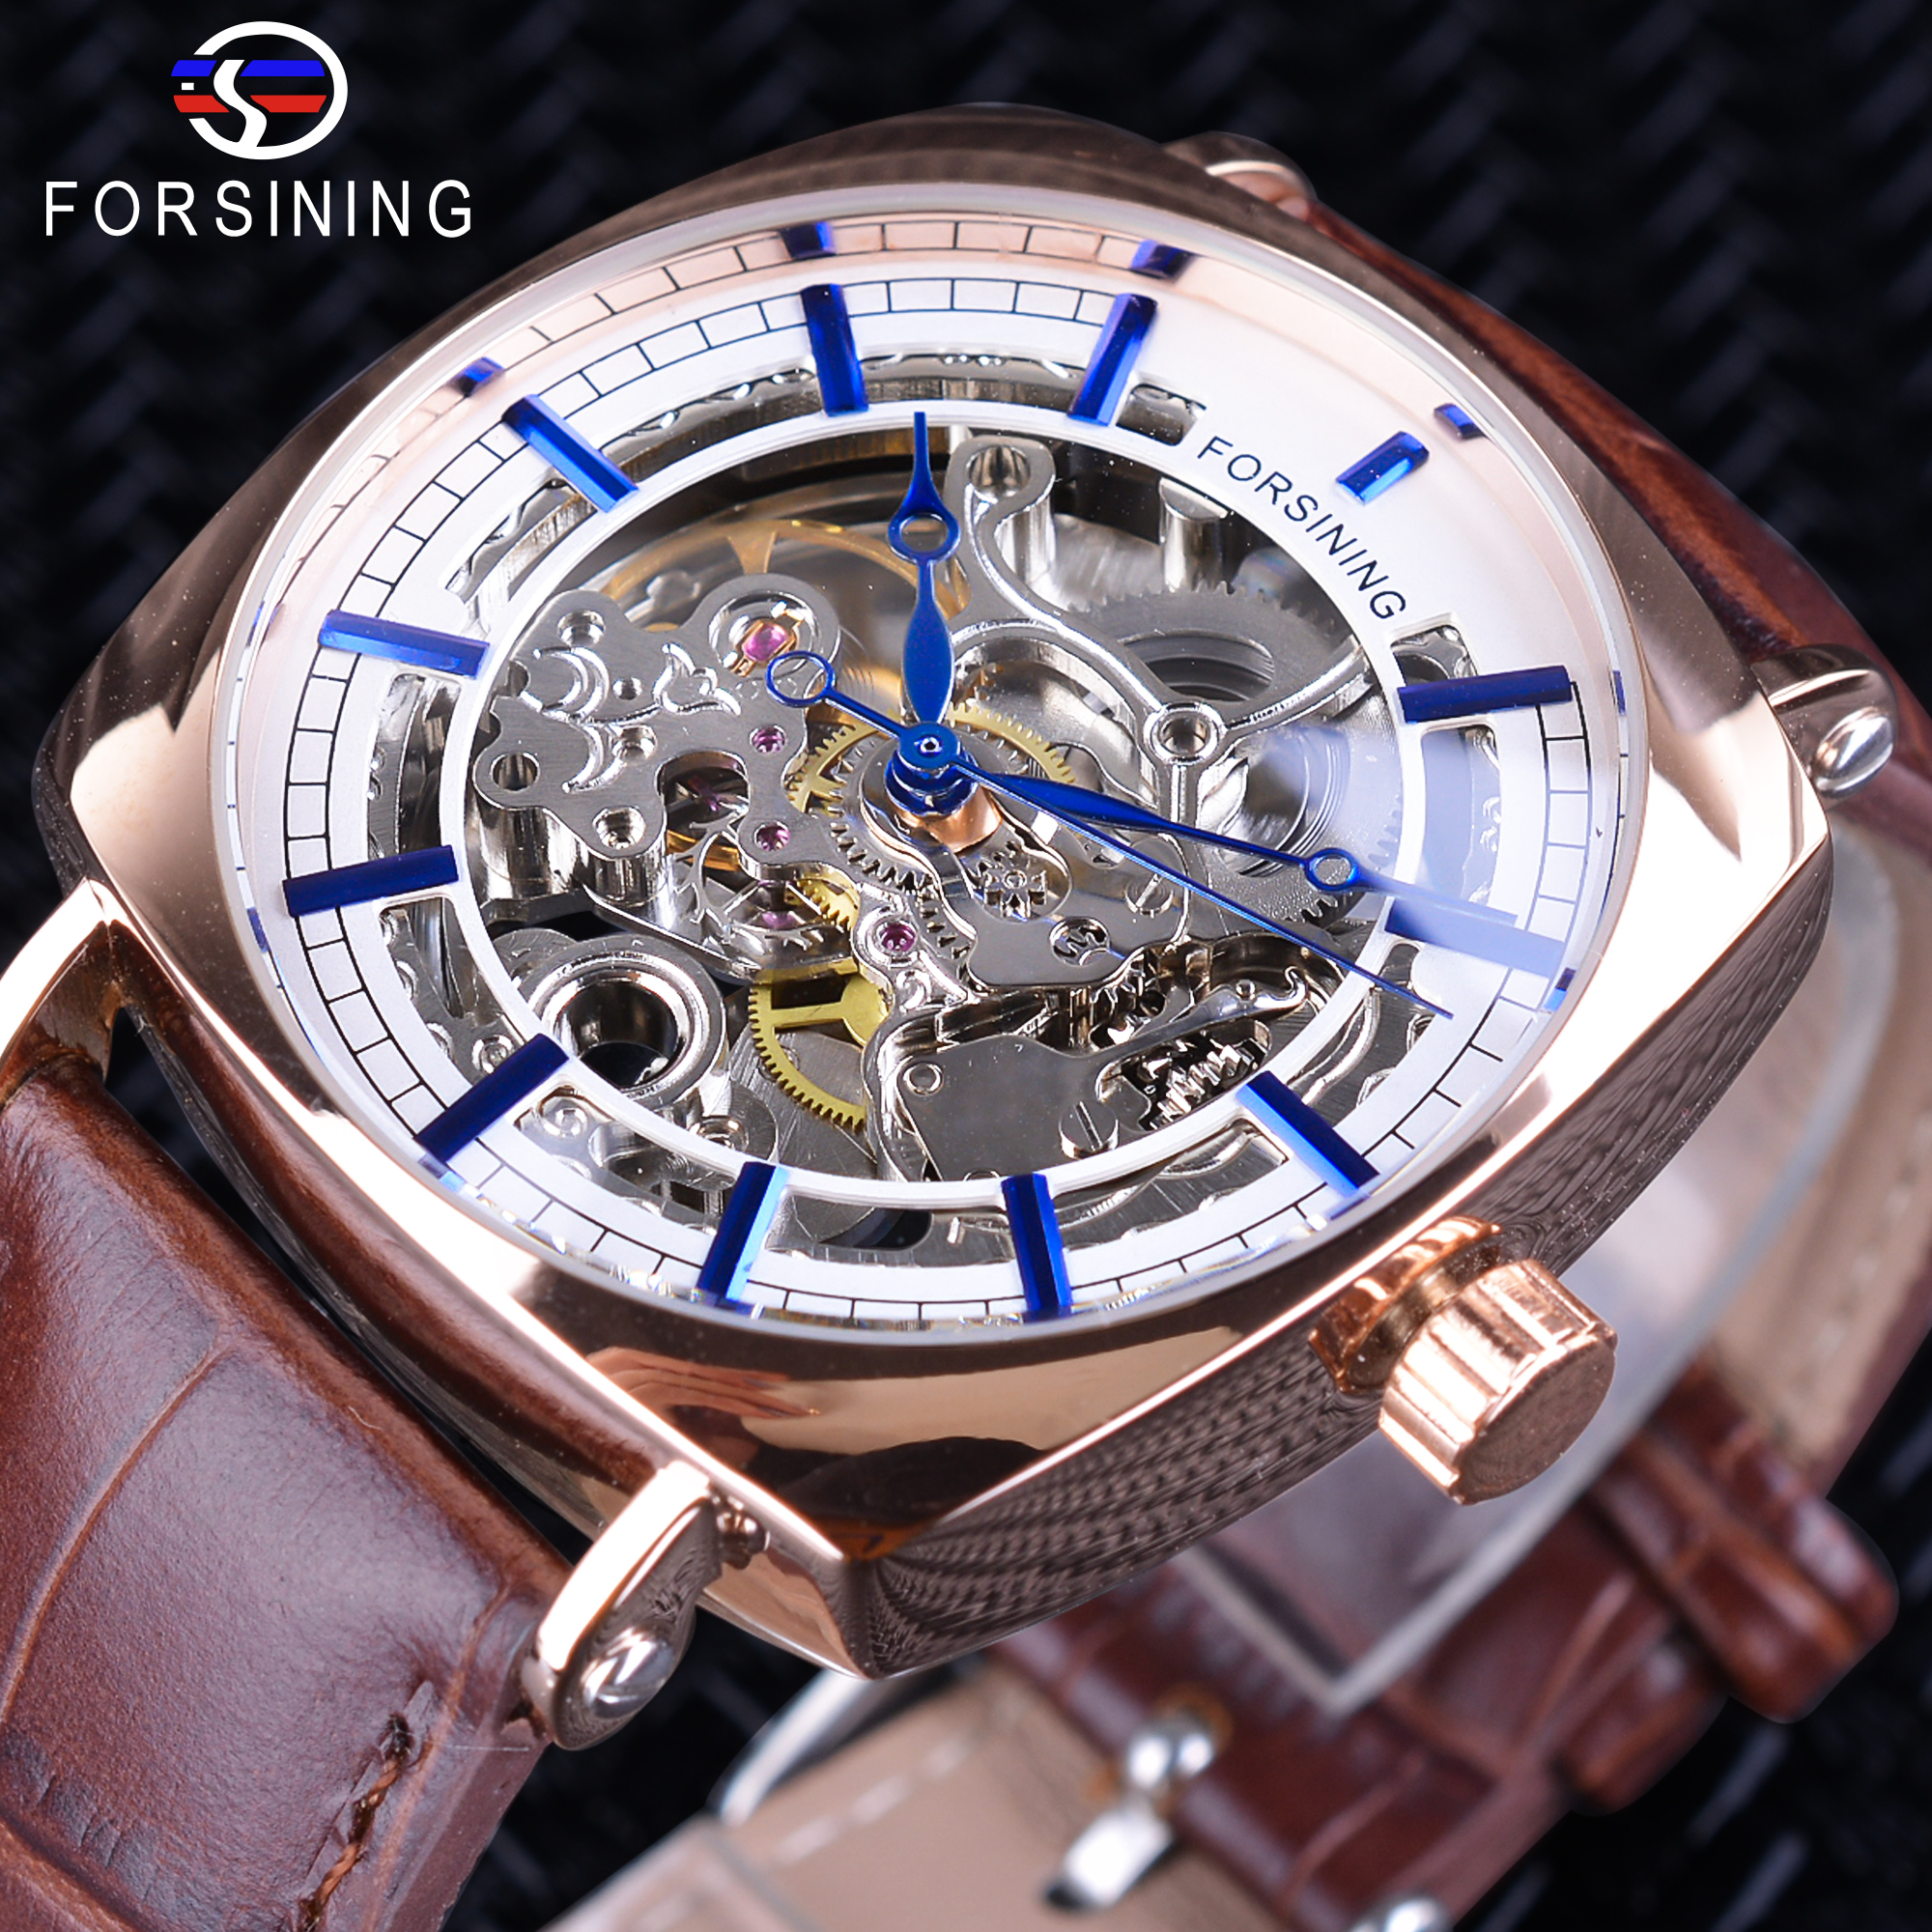 Forsining Brown Genuine Leather Fashion Blue Hands Design Square Case Men's Watch Top Brand Luxury Automatic Mechanical Watches forsining classic series black genuine leather strap 3 dial 6 hands men watch top brand luxury automatic mechanical watch clock